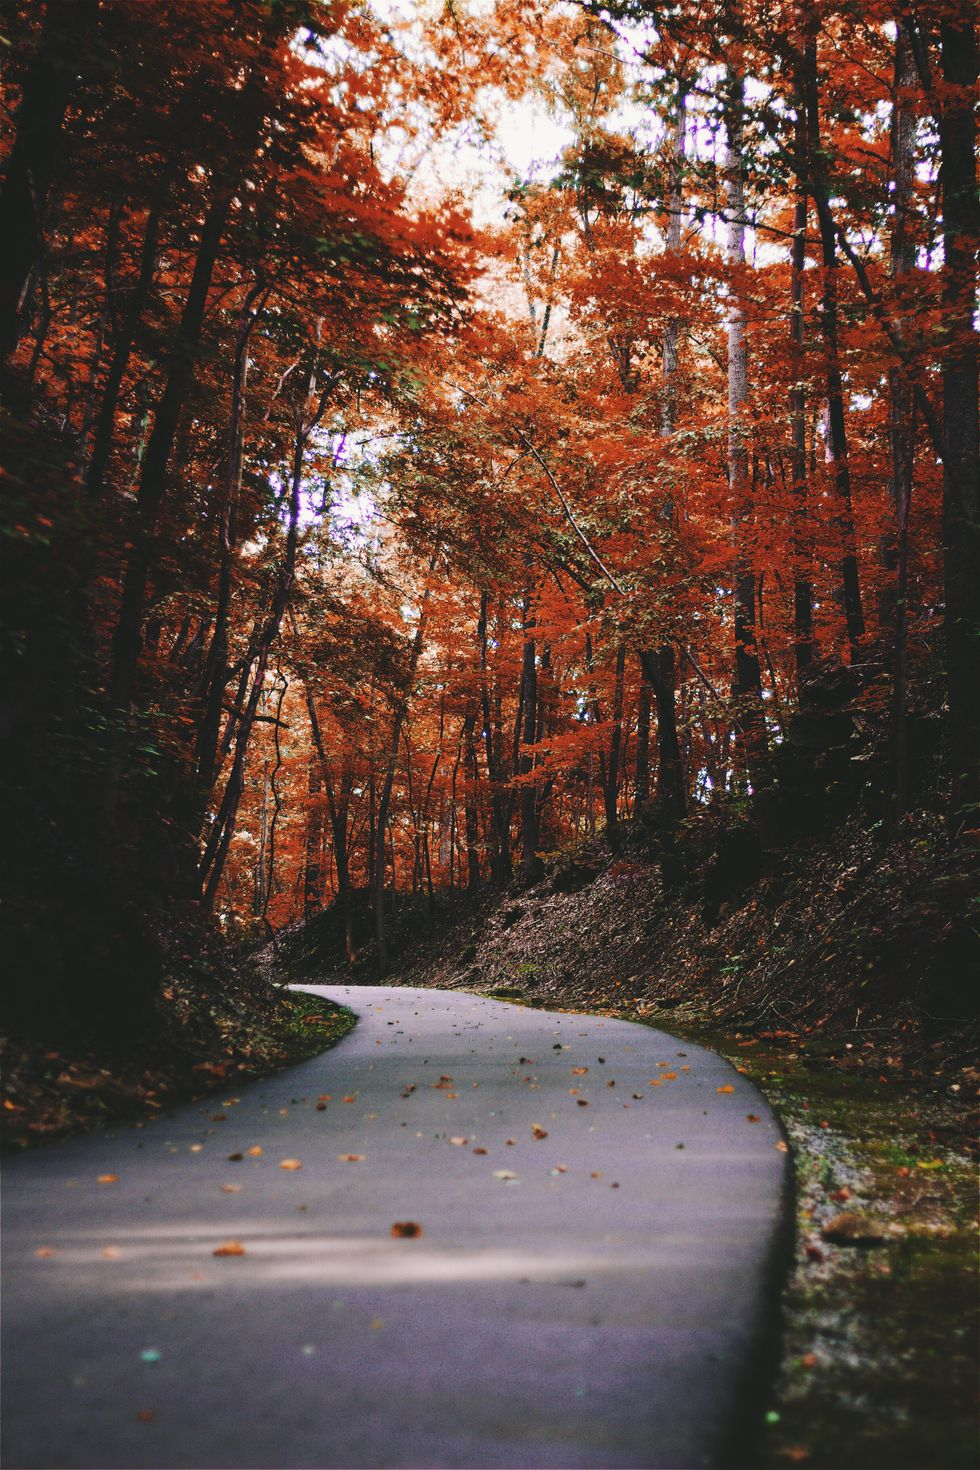 10 Songs To Add To Your Autumn Playlist